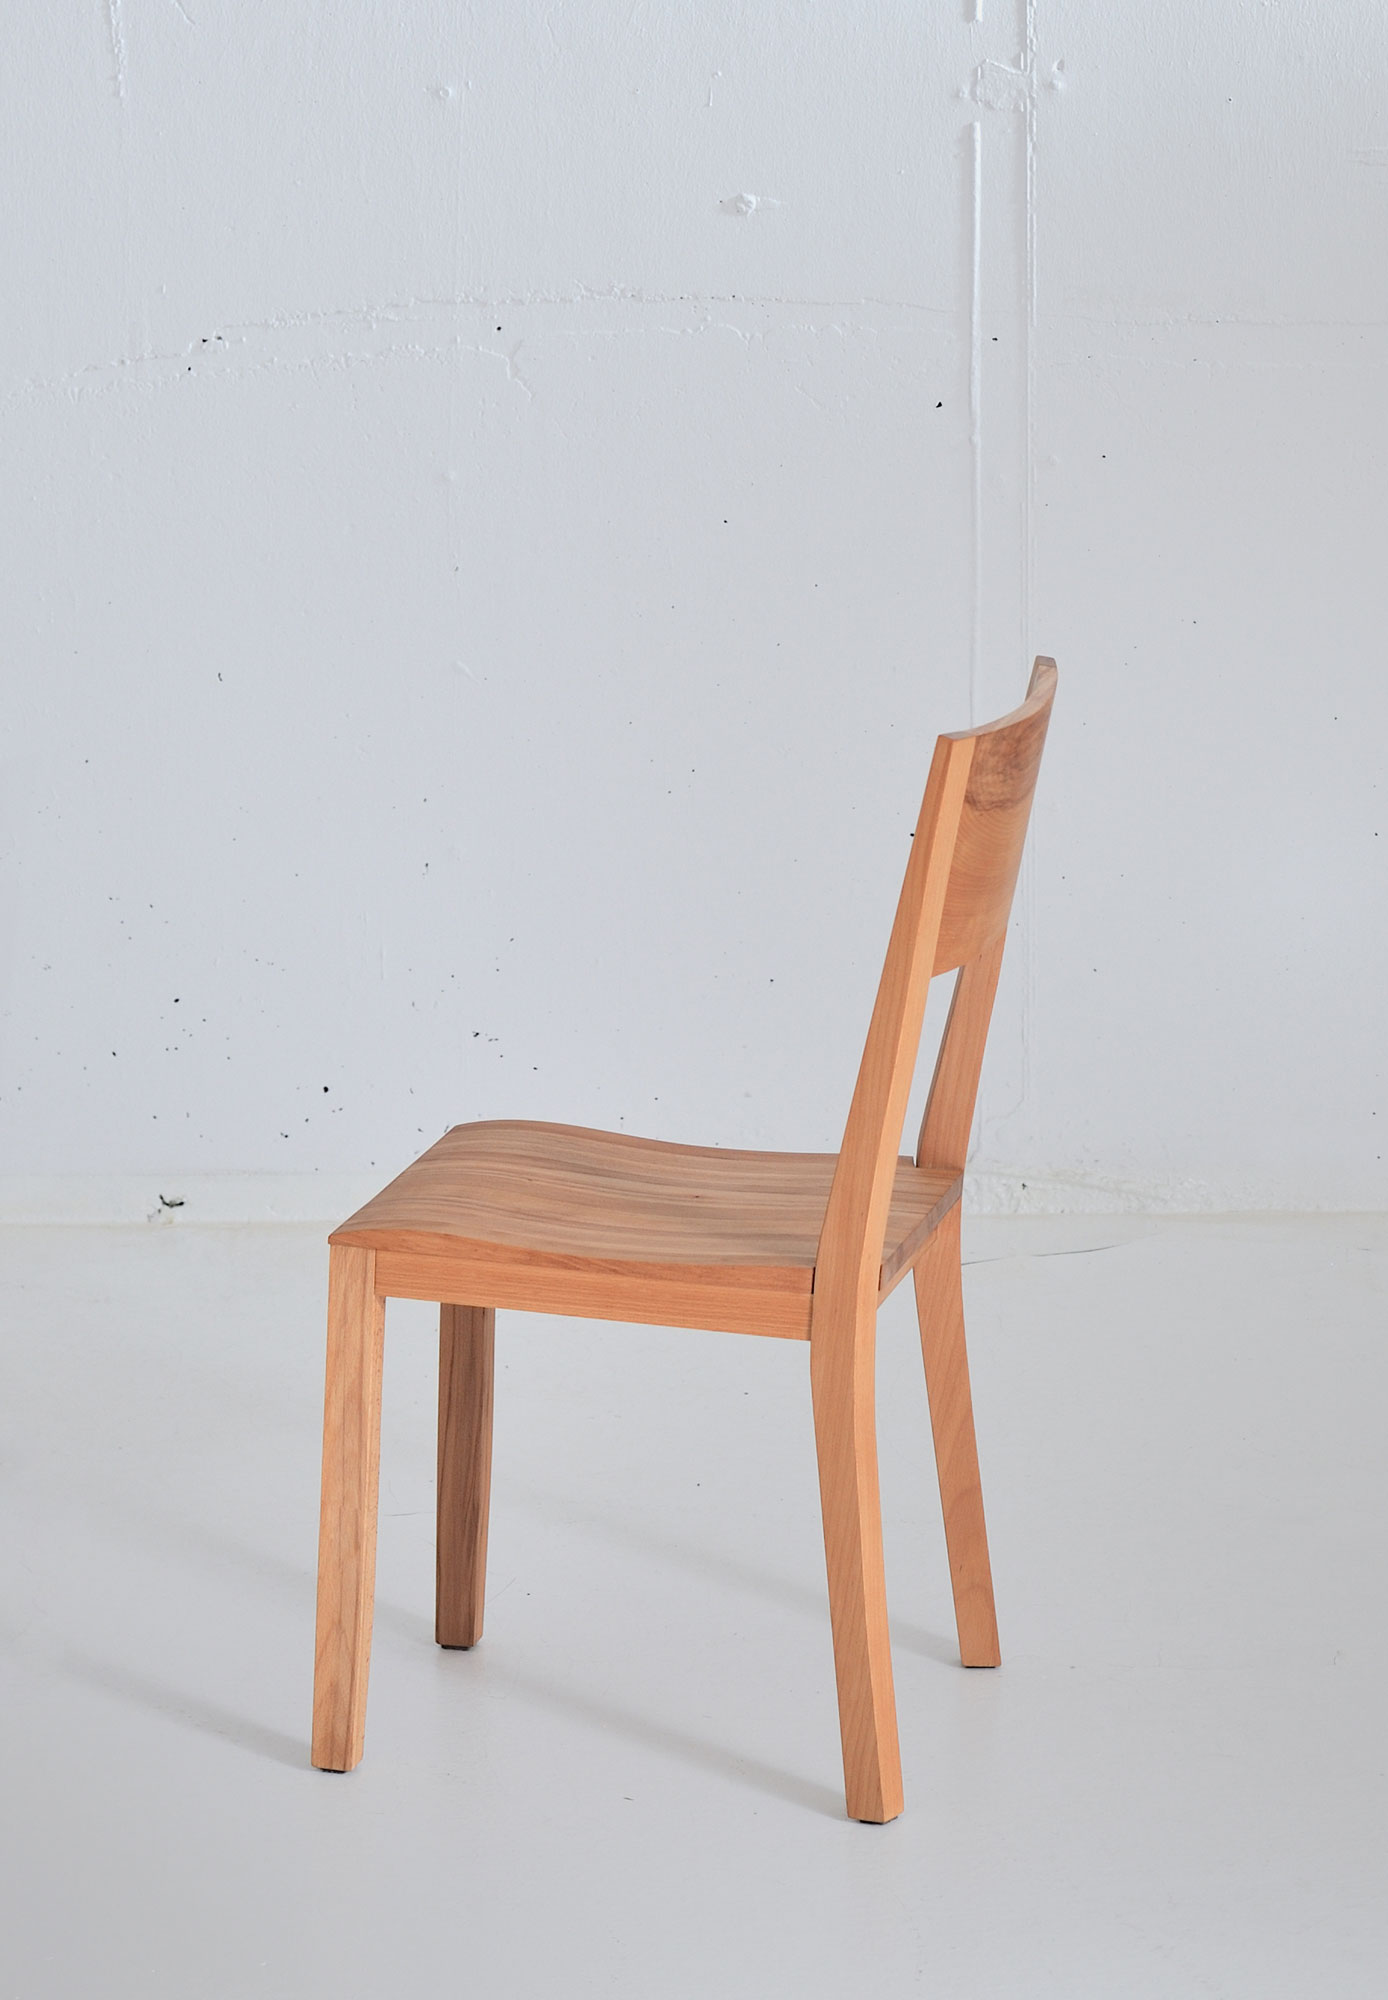 Dining Room Wooden Chair NOMI 3738 custom made in solid wood by vitamin design